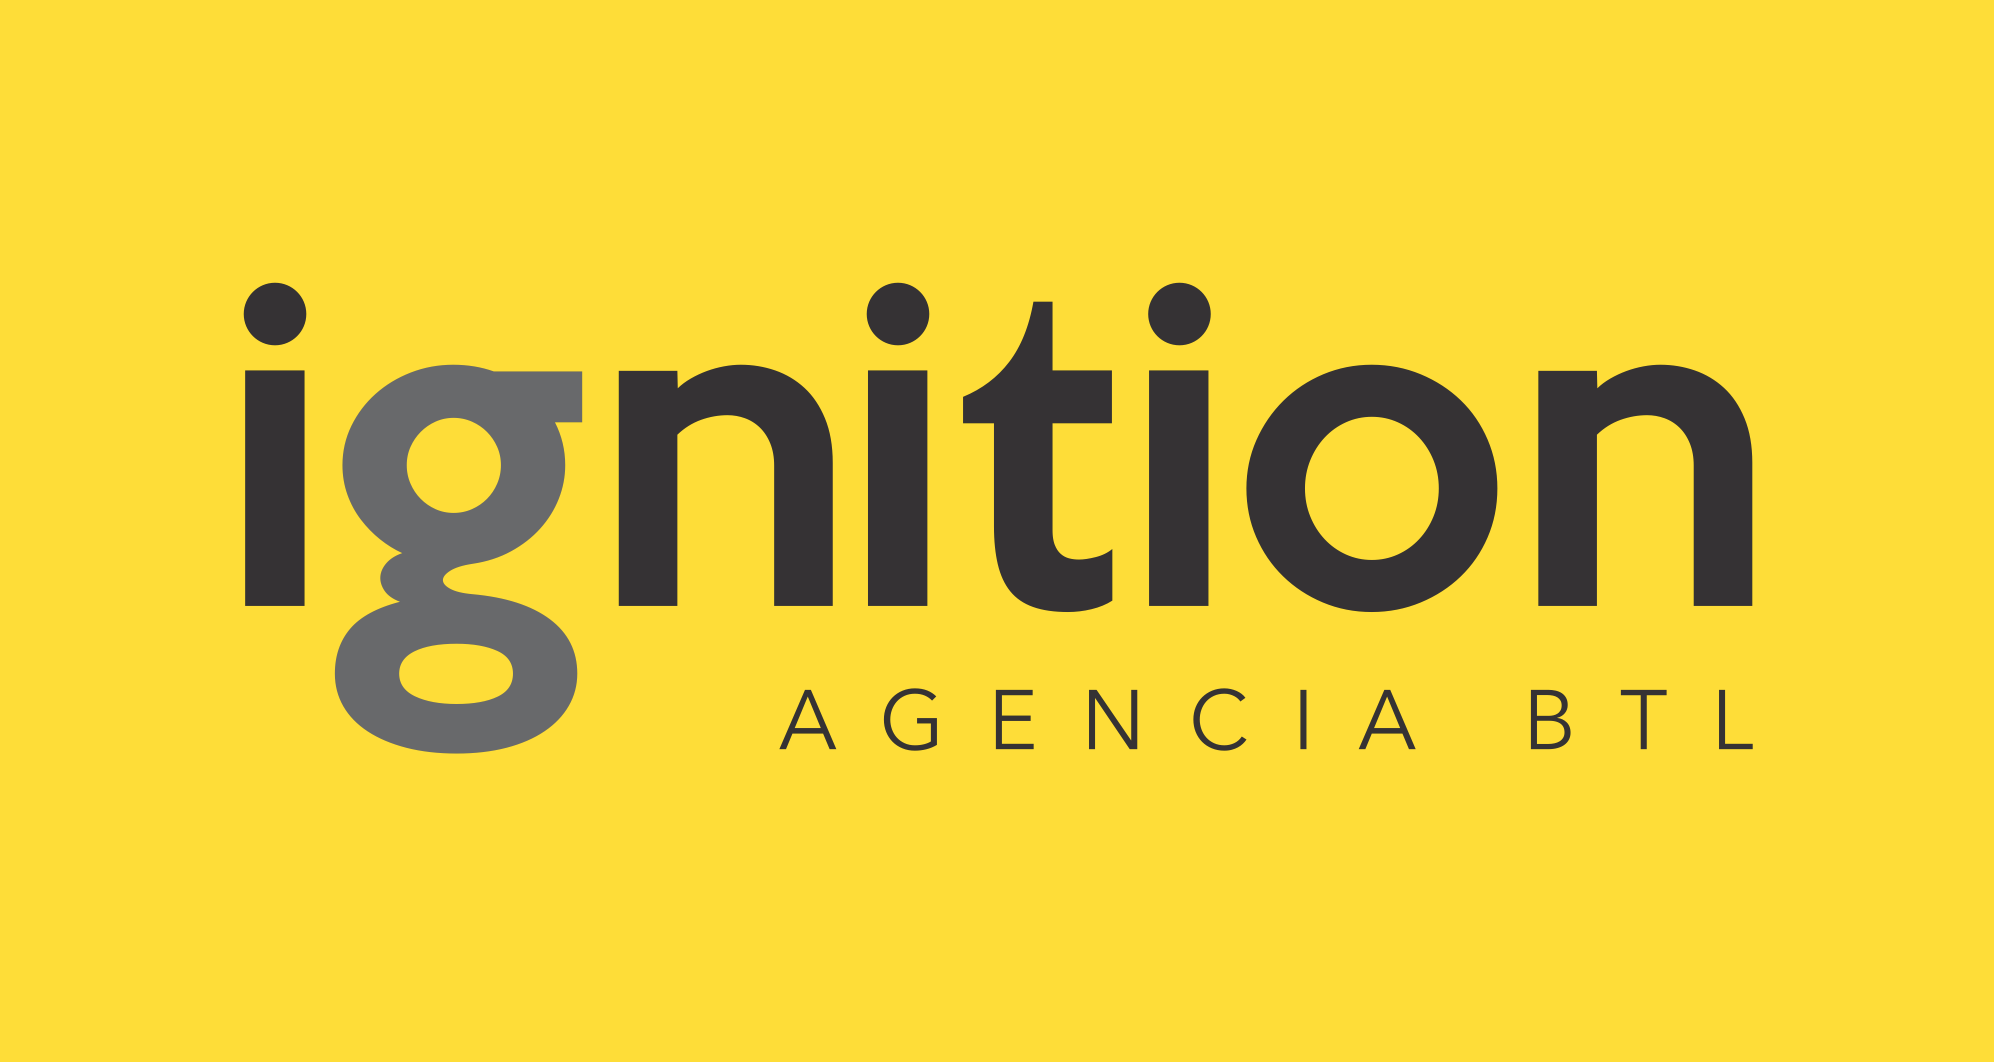 Ignition Agencia BTL